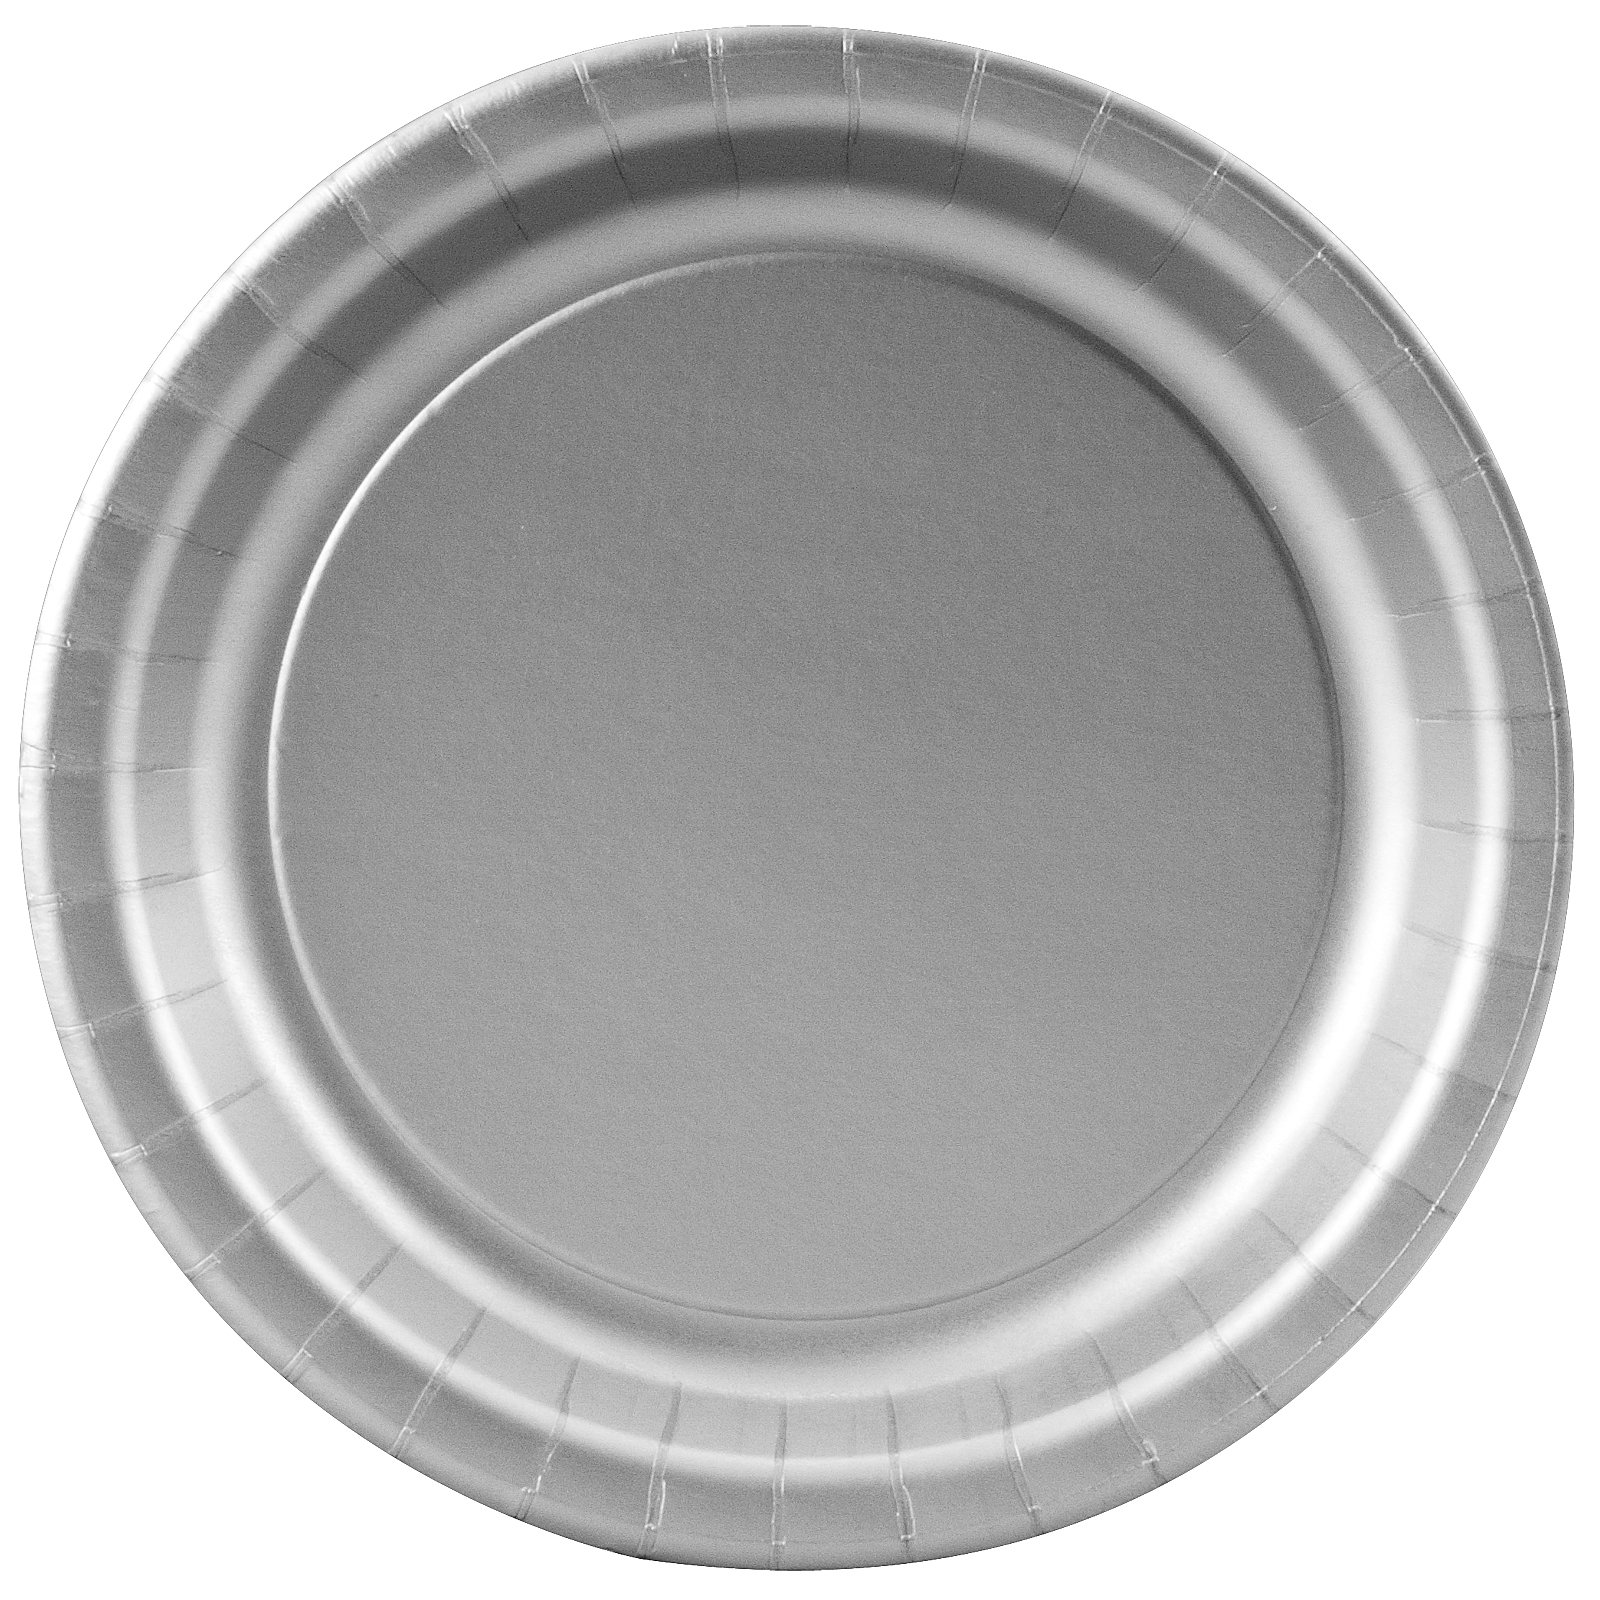 Shimmering Silver (Silver) Paper Dessert Plates (24 count)